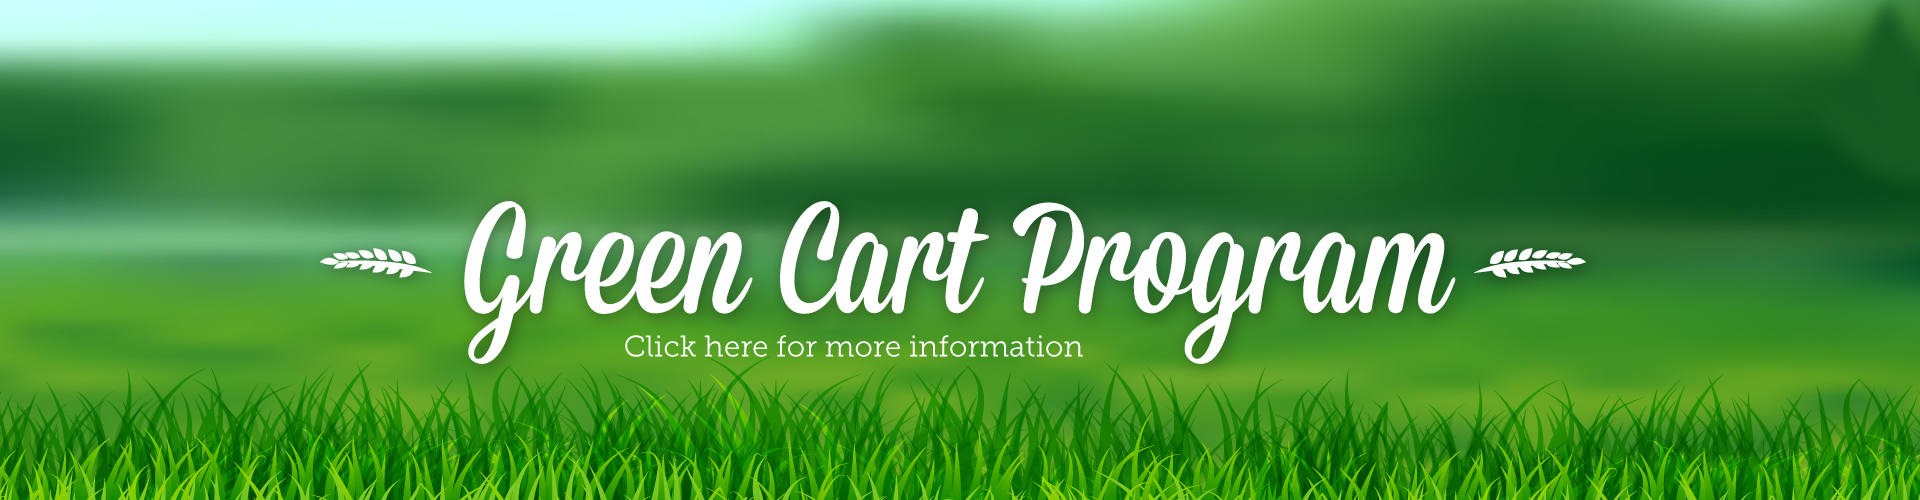 Green Cart Program - banner